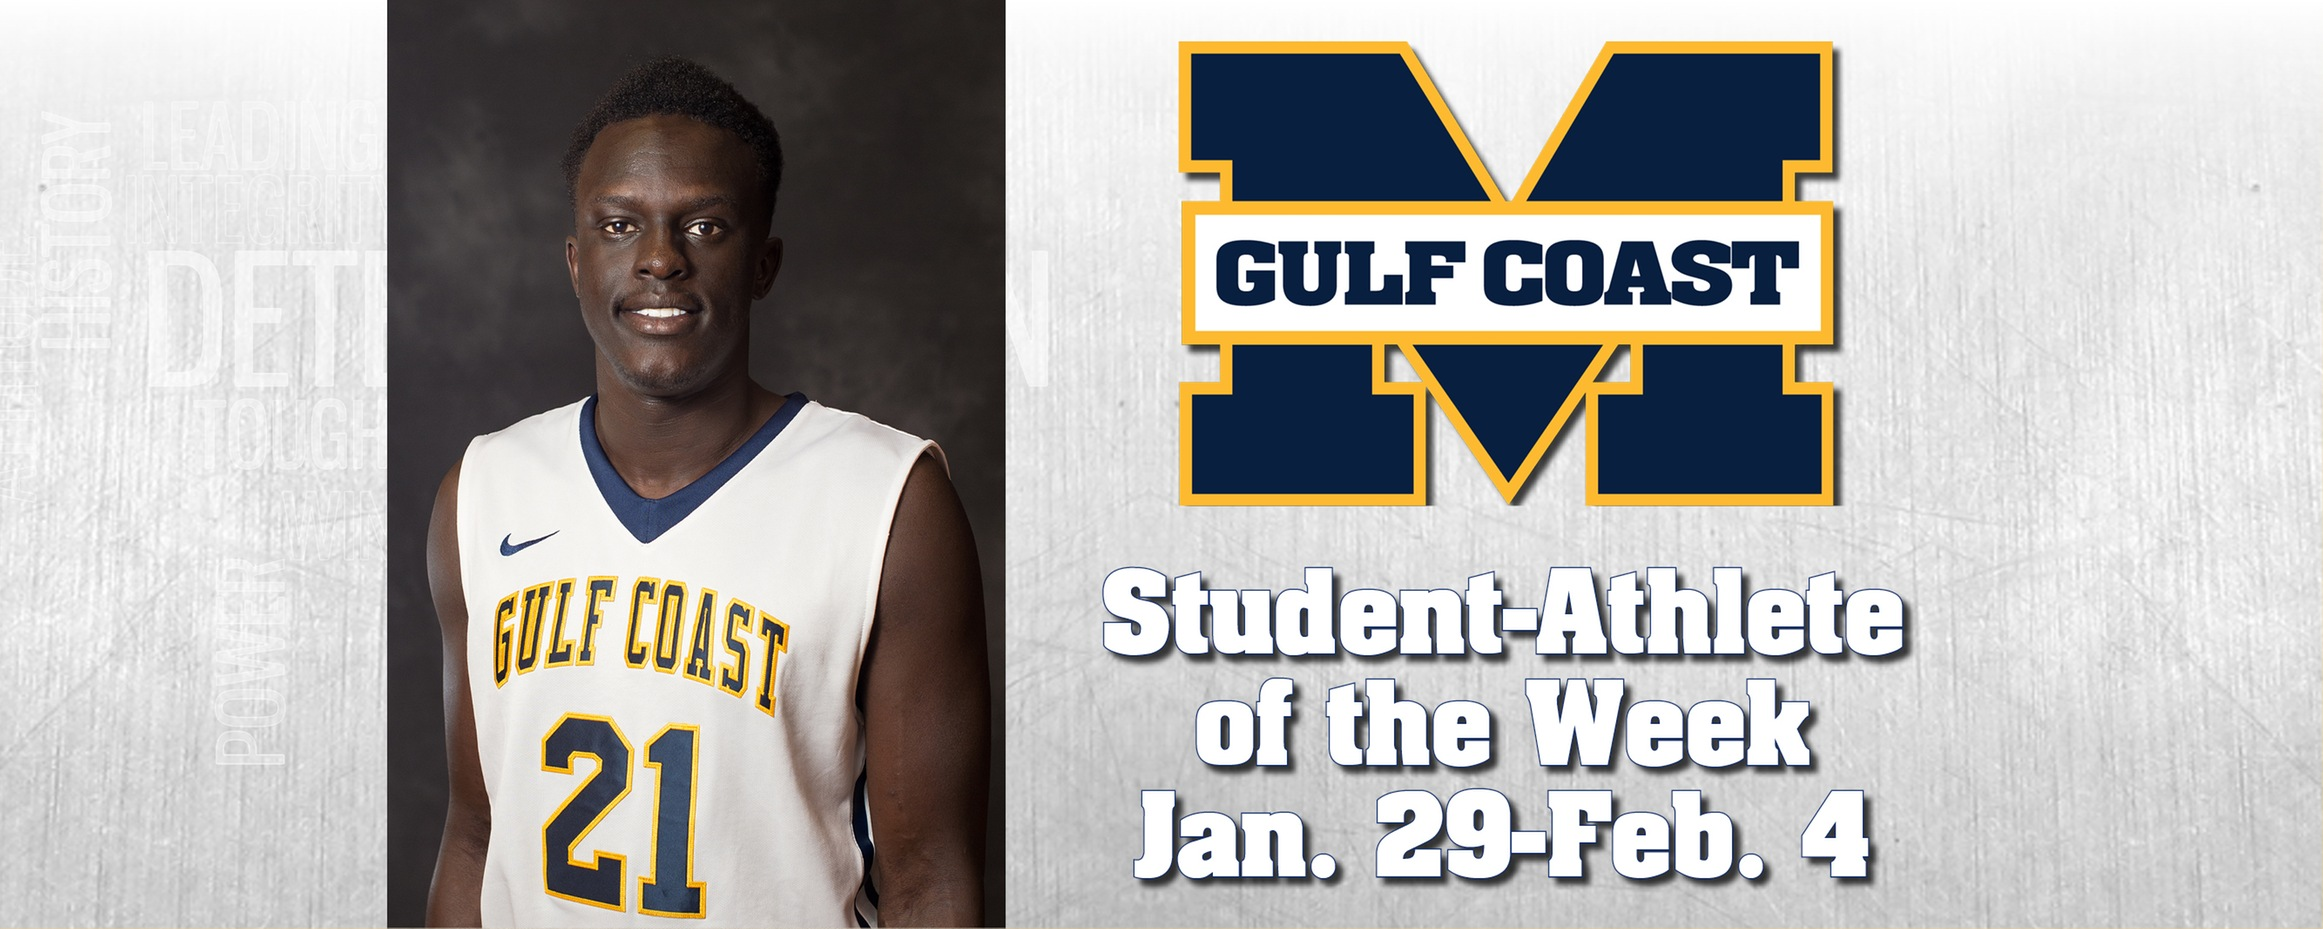 Chan named MGCCC Student-Athlete of the Week